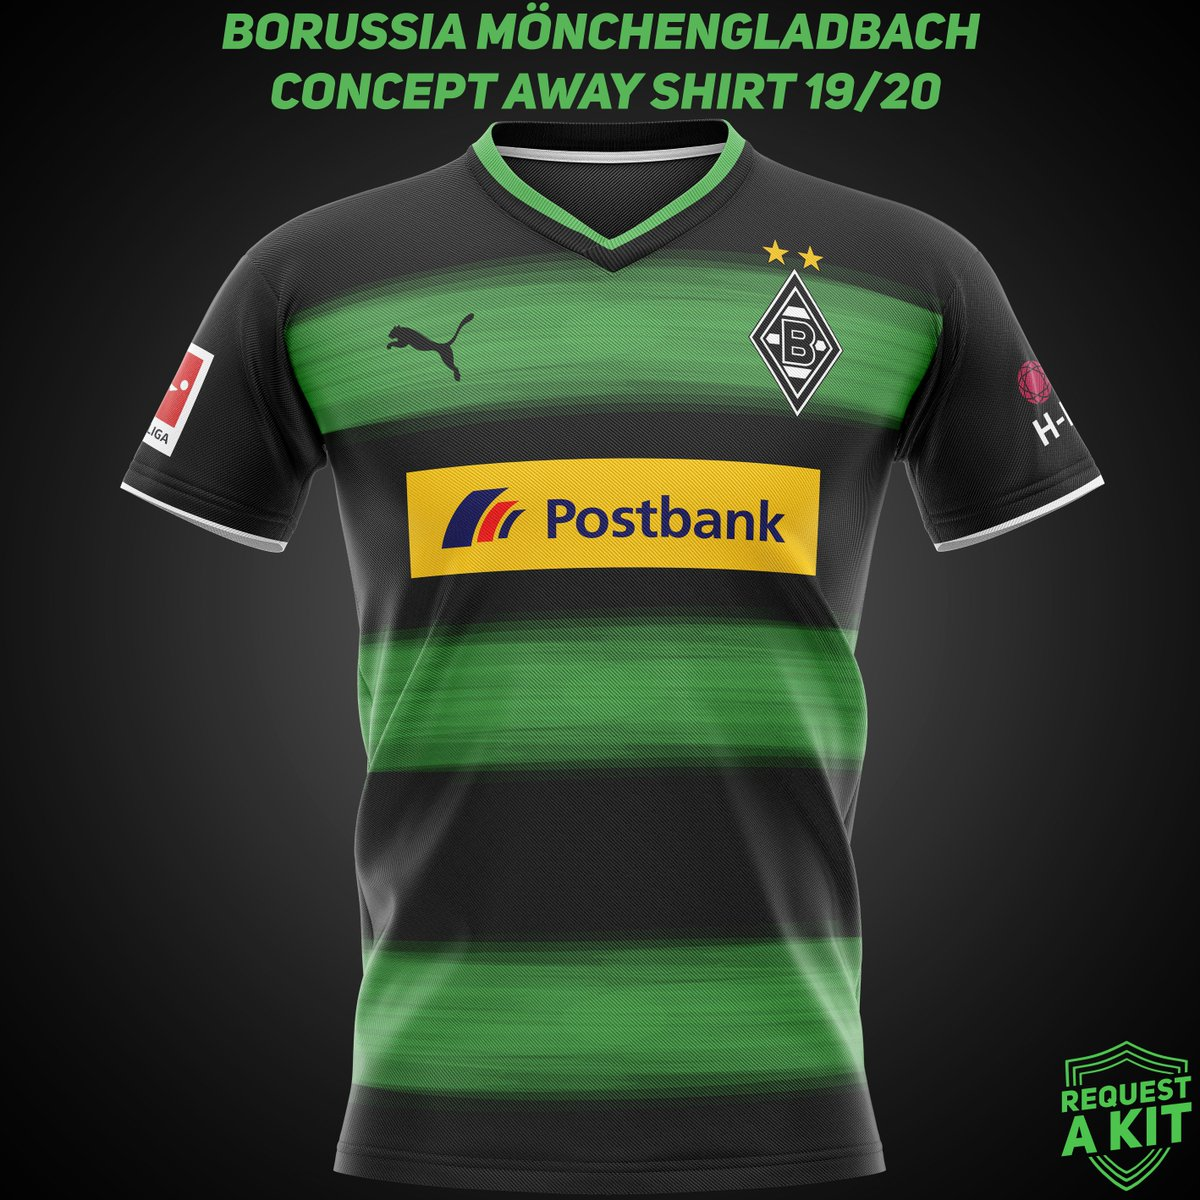 Request A Kit On Twitter Borussia Monchengladbach Concept Home And Away Shirts 2019 20 Requested By Harryq15 Bmg Fohlenelf Diefohlen Borussia Monchengladbach Fm19 Fm19beta Wearethecommunity Download For Your Football Manager Save Here